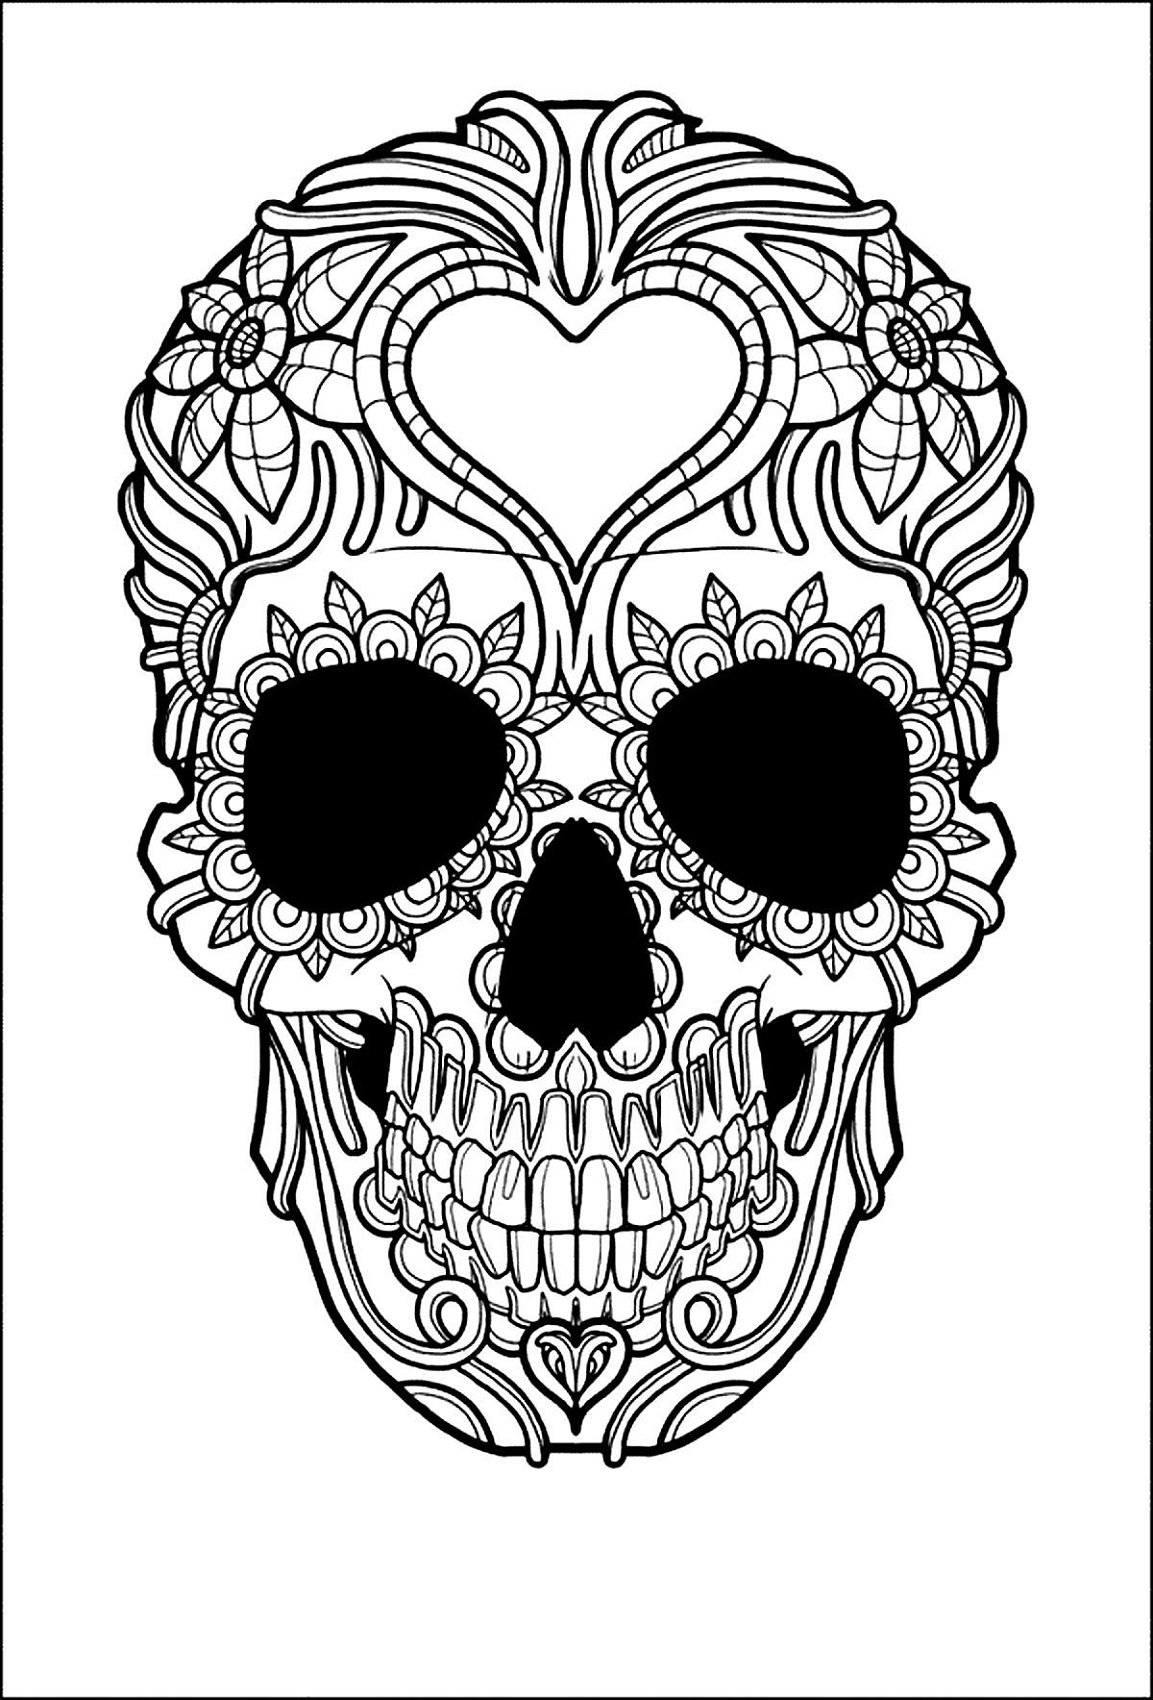 Candy Skull Coloring Pages For All Ages